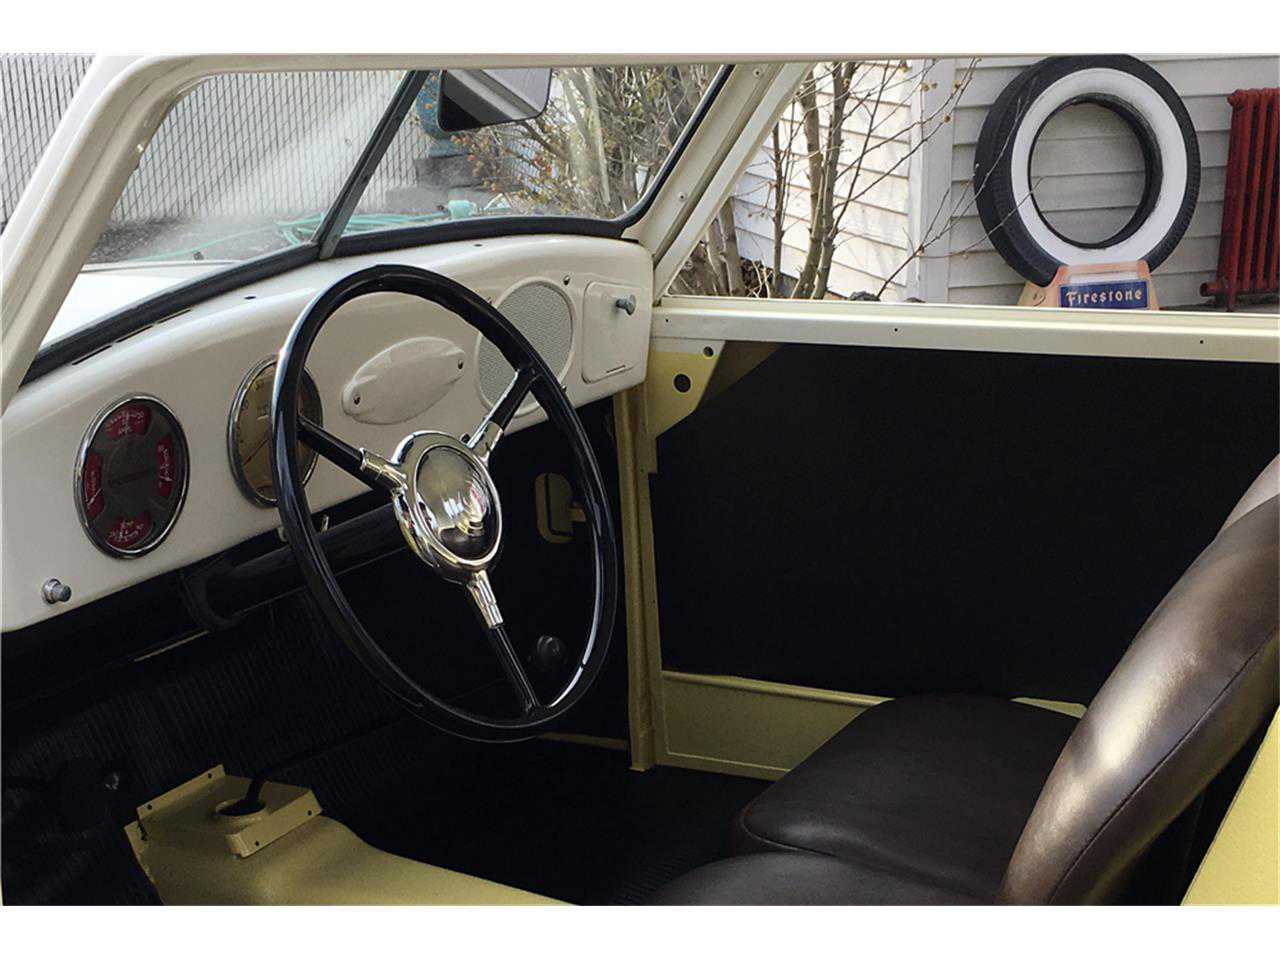 Sensational 1947 Crosley Fire Truck For Sale In Cc4721263 Pabps2019 Chair Design Images Pabps2019Com